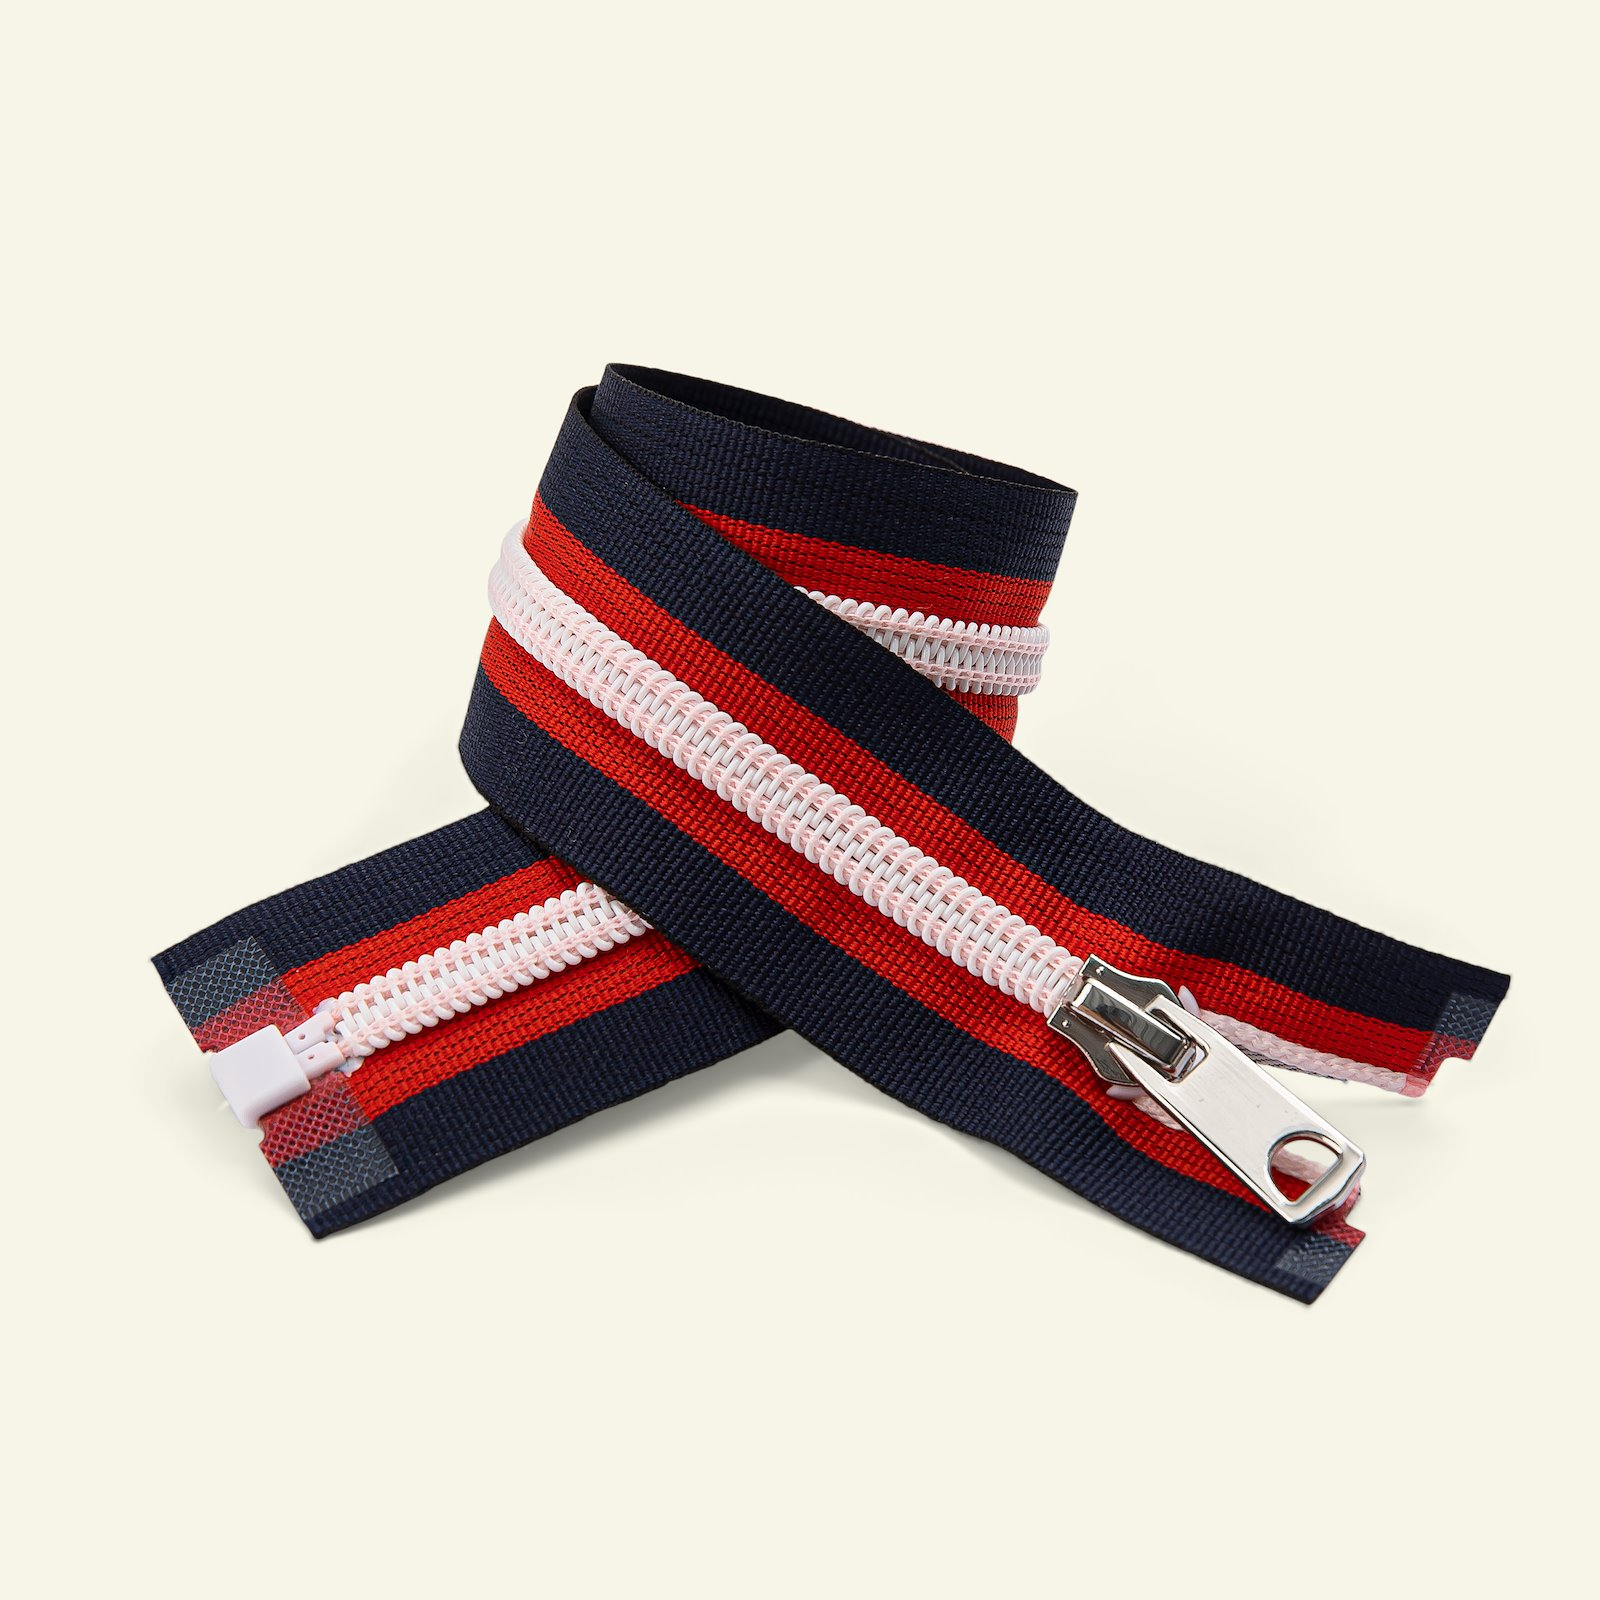 Zip 6mm open end 45cm navy/red/white x47061_pack